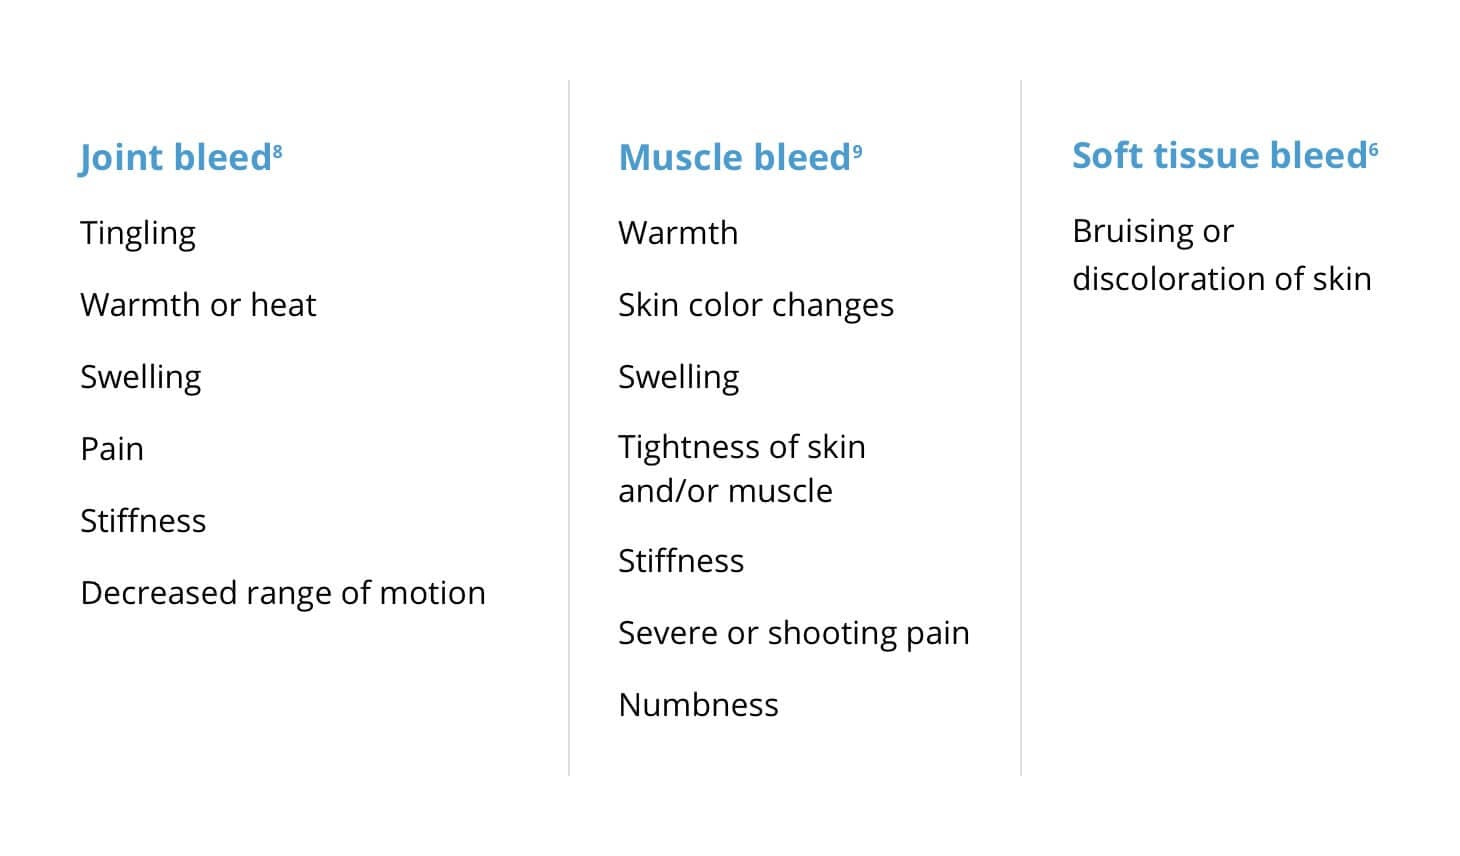 Signs and symptoms of common types of bleeds